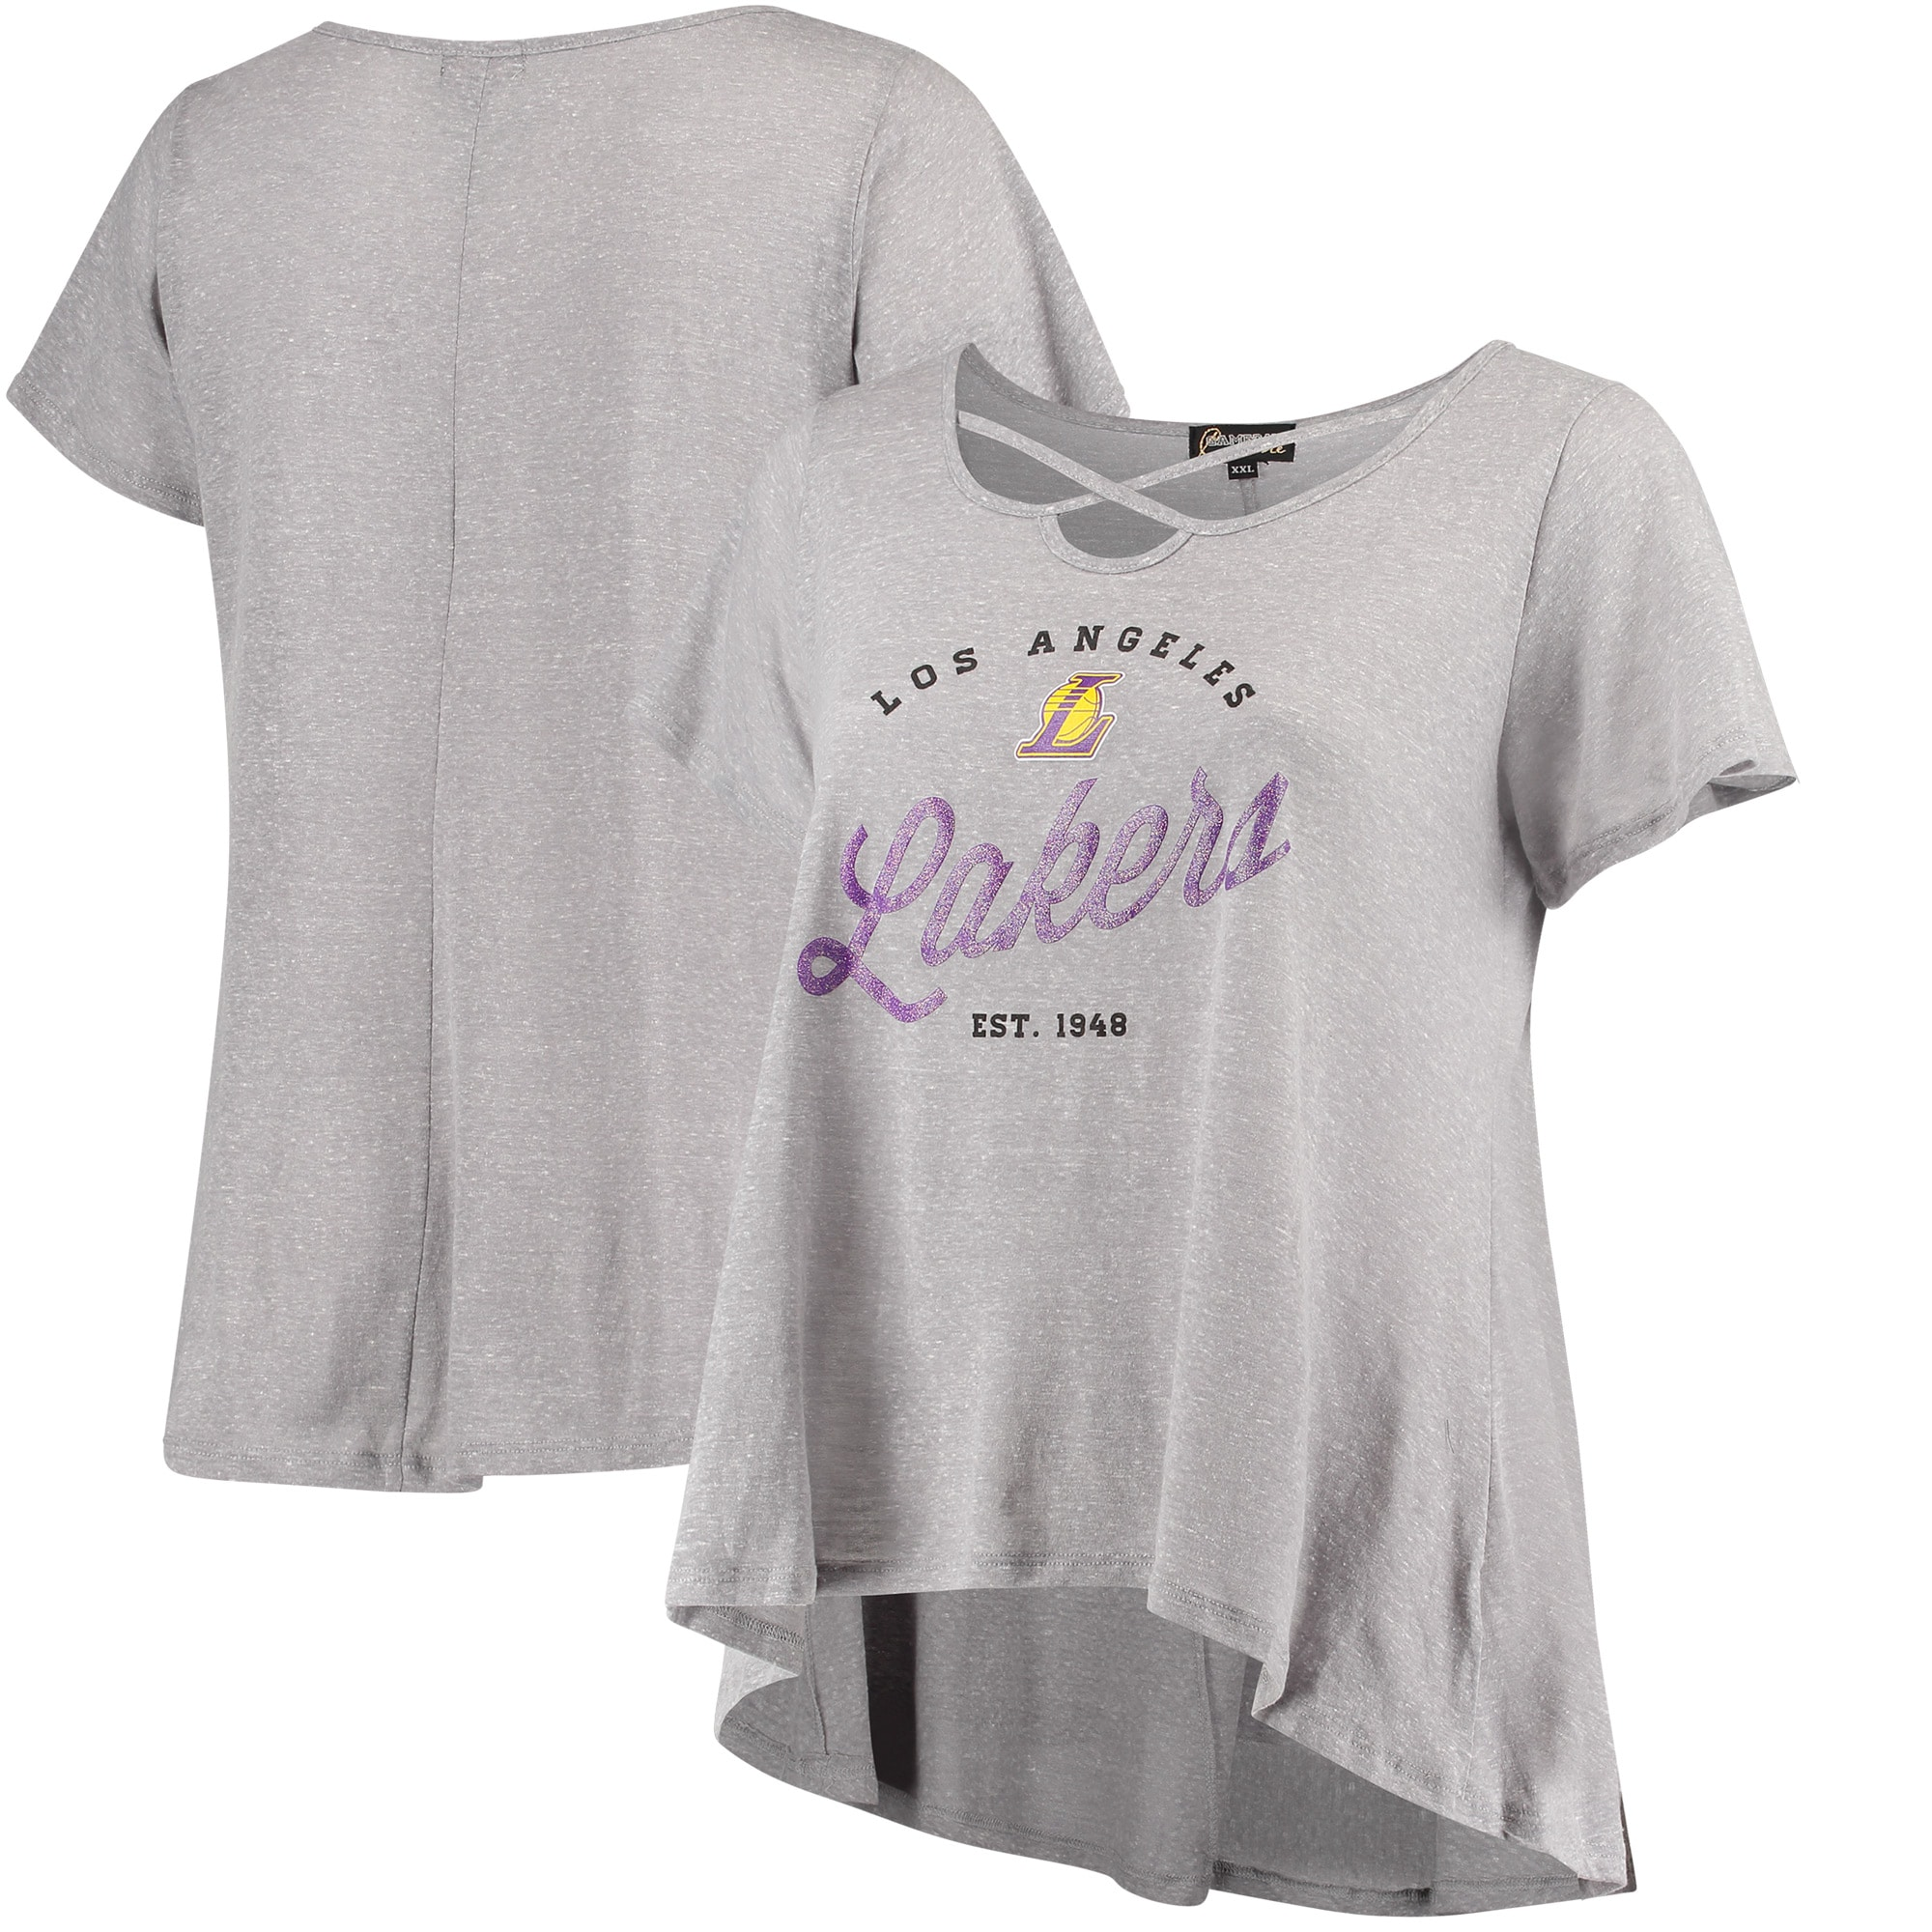 Los Angeles Lakers Women's Criss Cross Front Tri-Blend T-Shirt - Gray